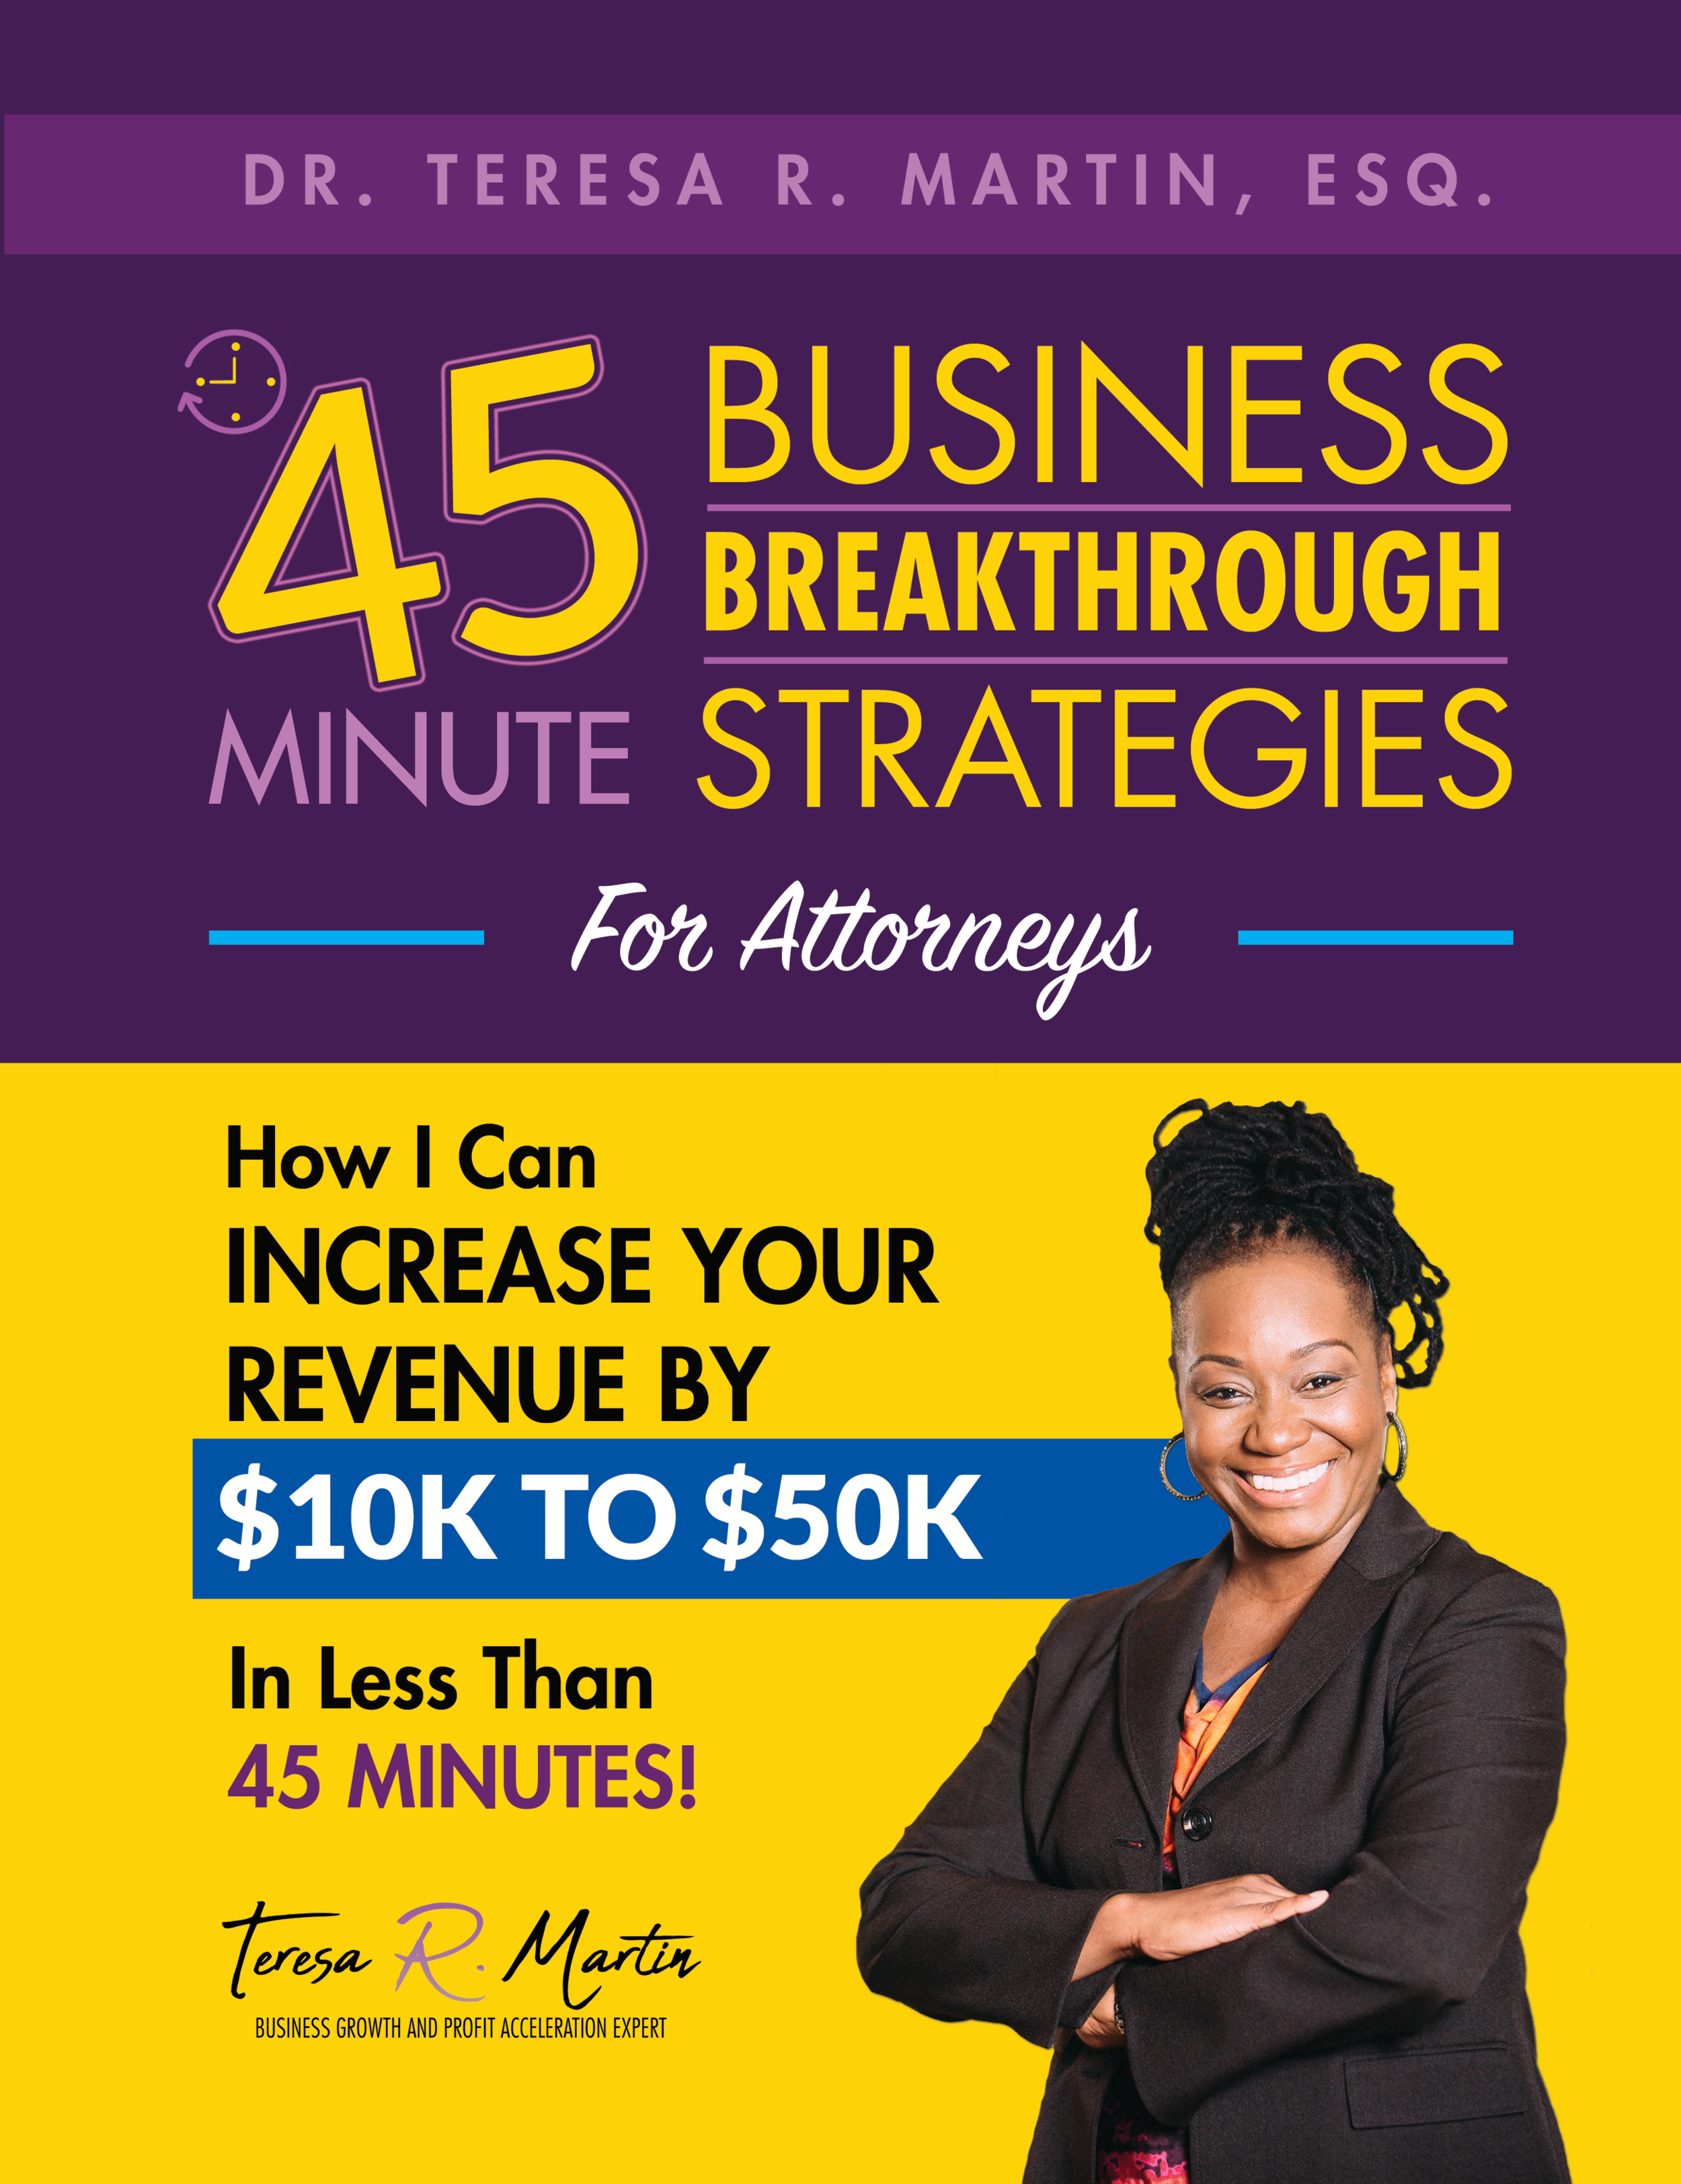 Business Breakthrough Strategies for Attorneys